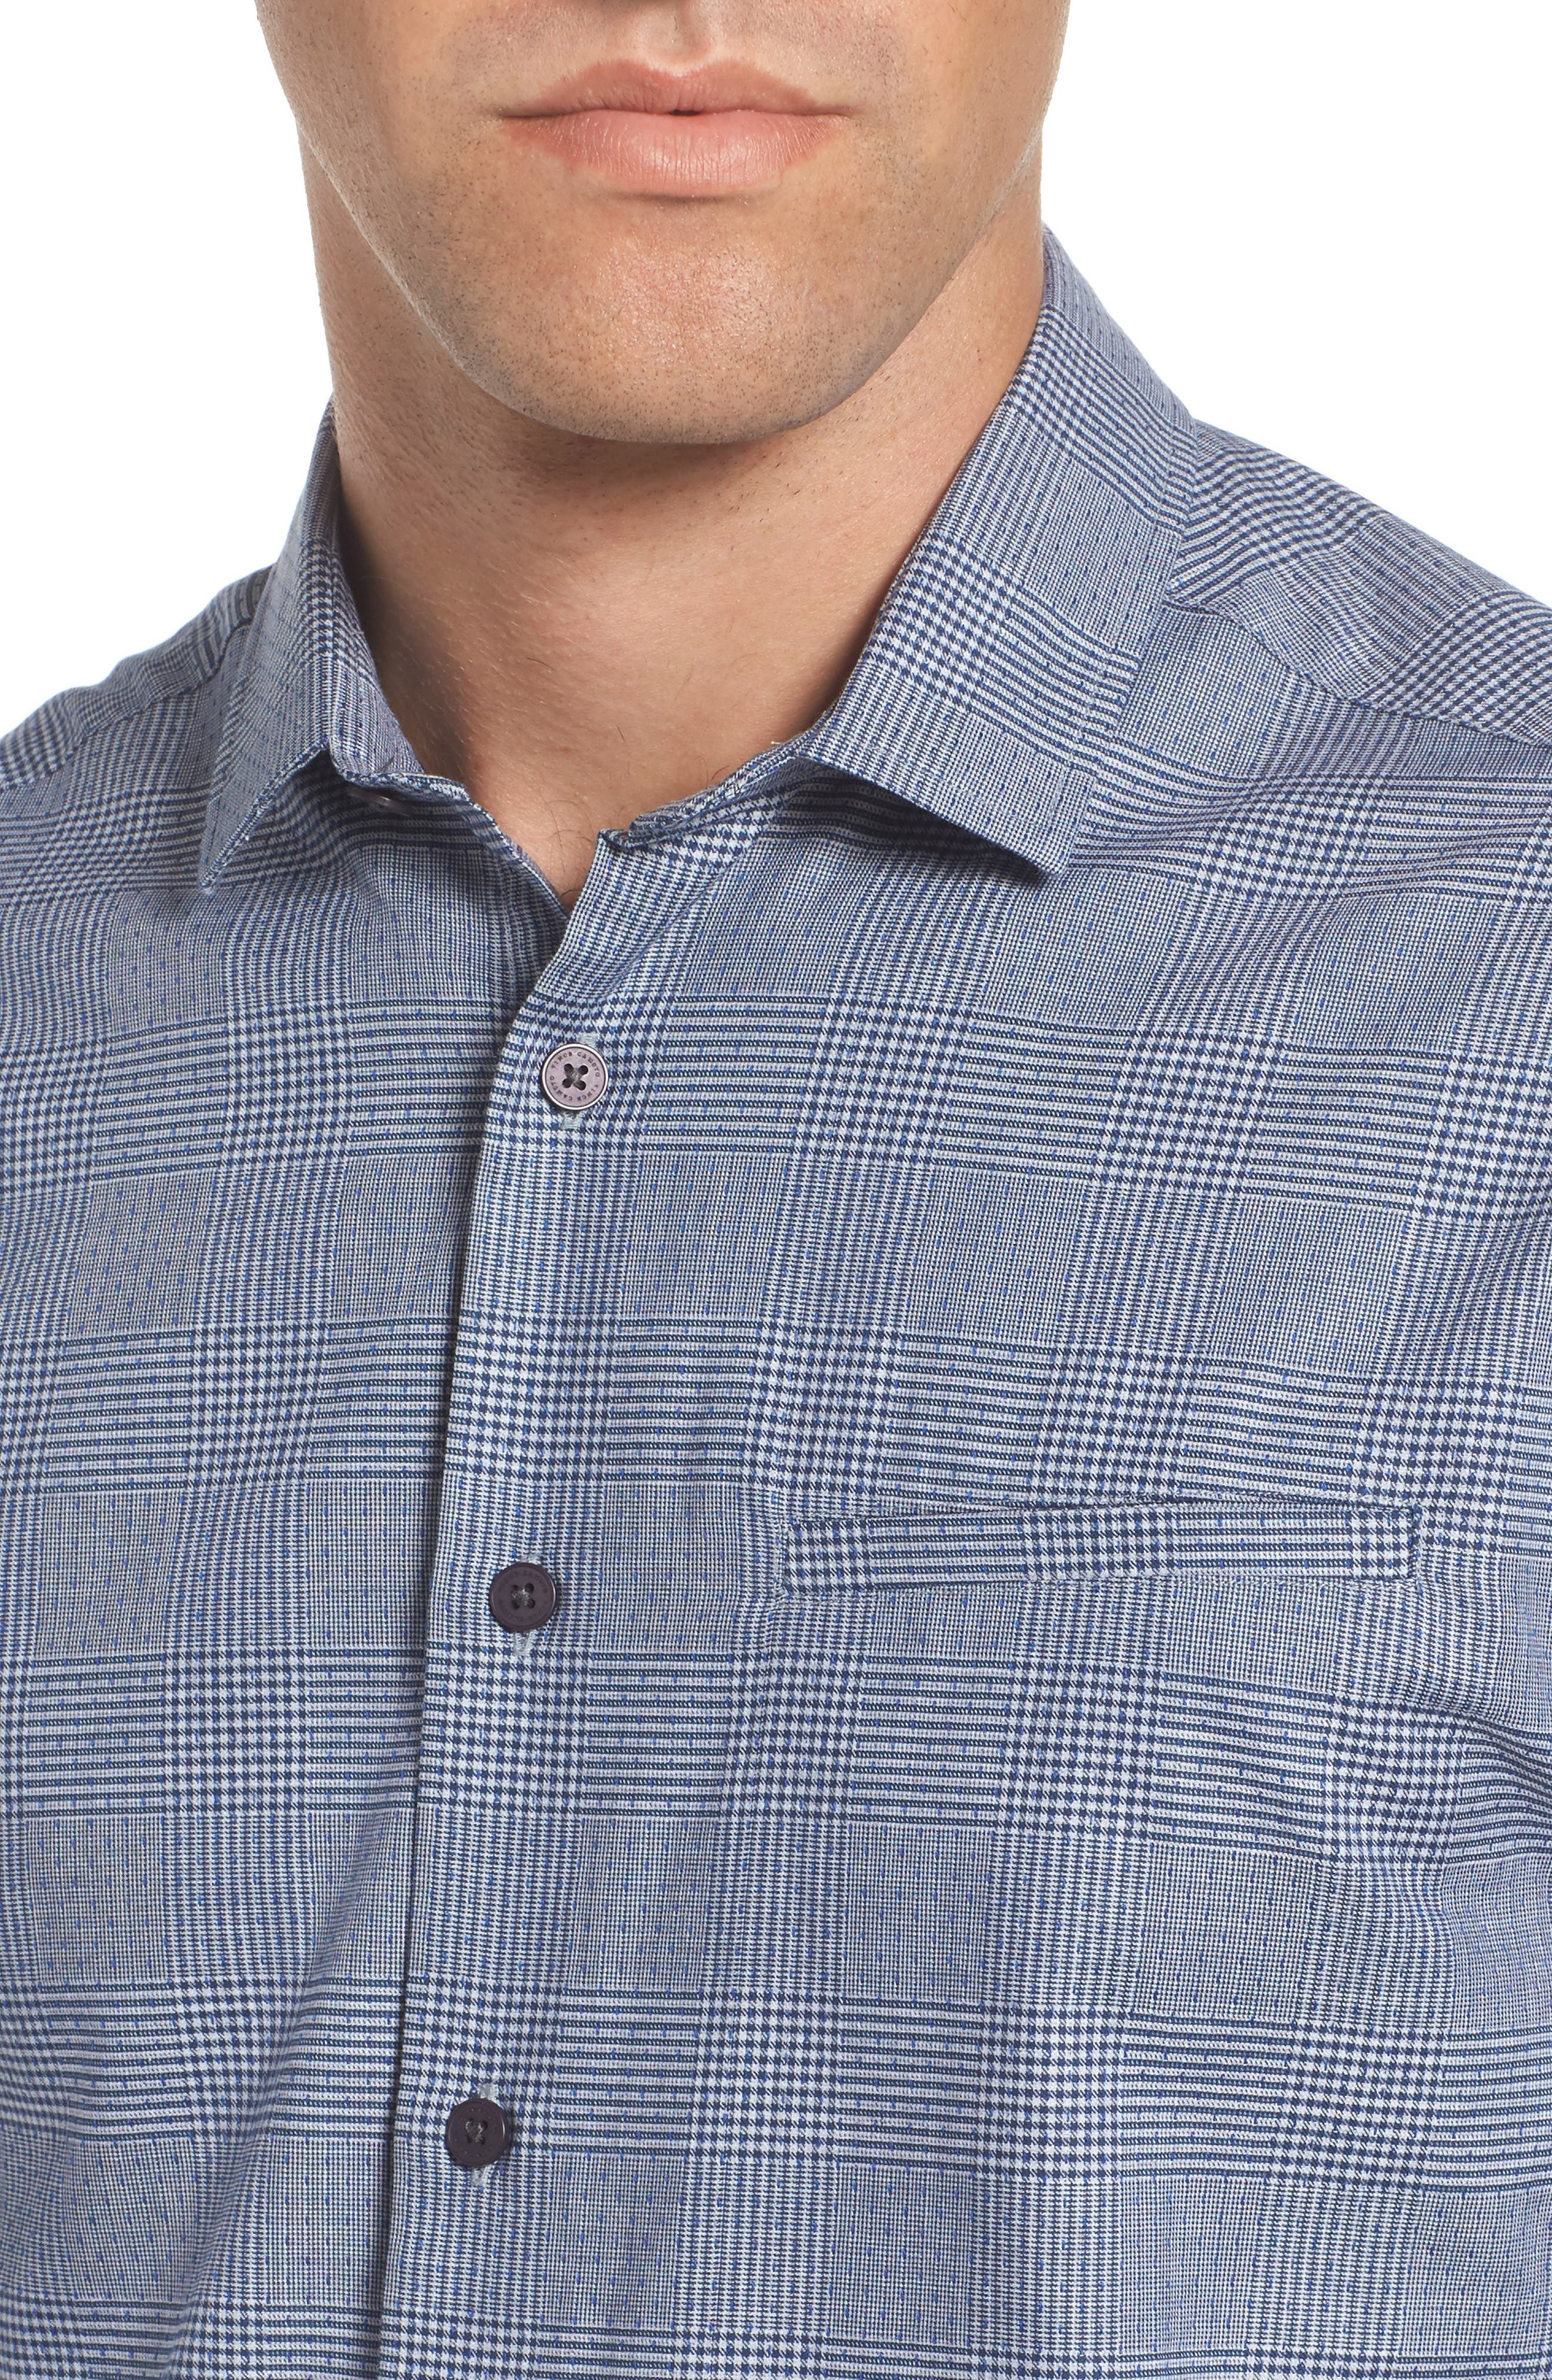 Hacking Slim Fit Glen Plaid Sport Shirt,                             Alternate thumbnail 4, color,                             Navy Check With Blue Dobby